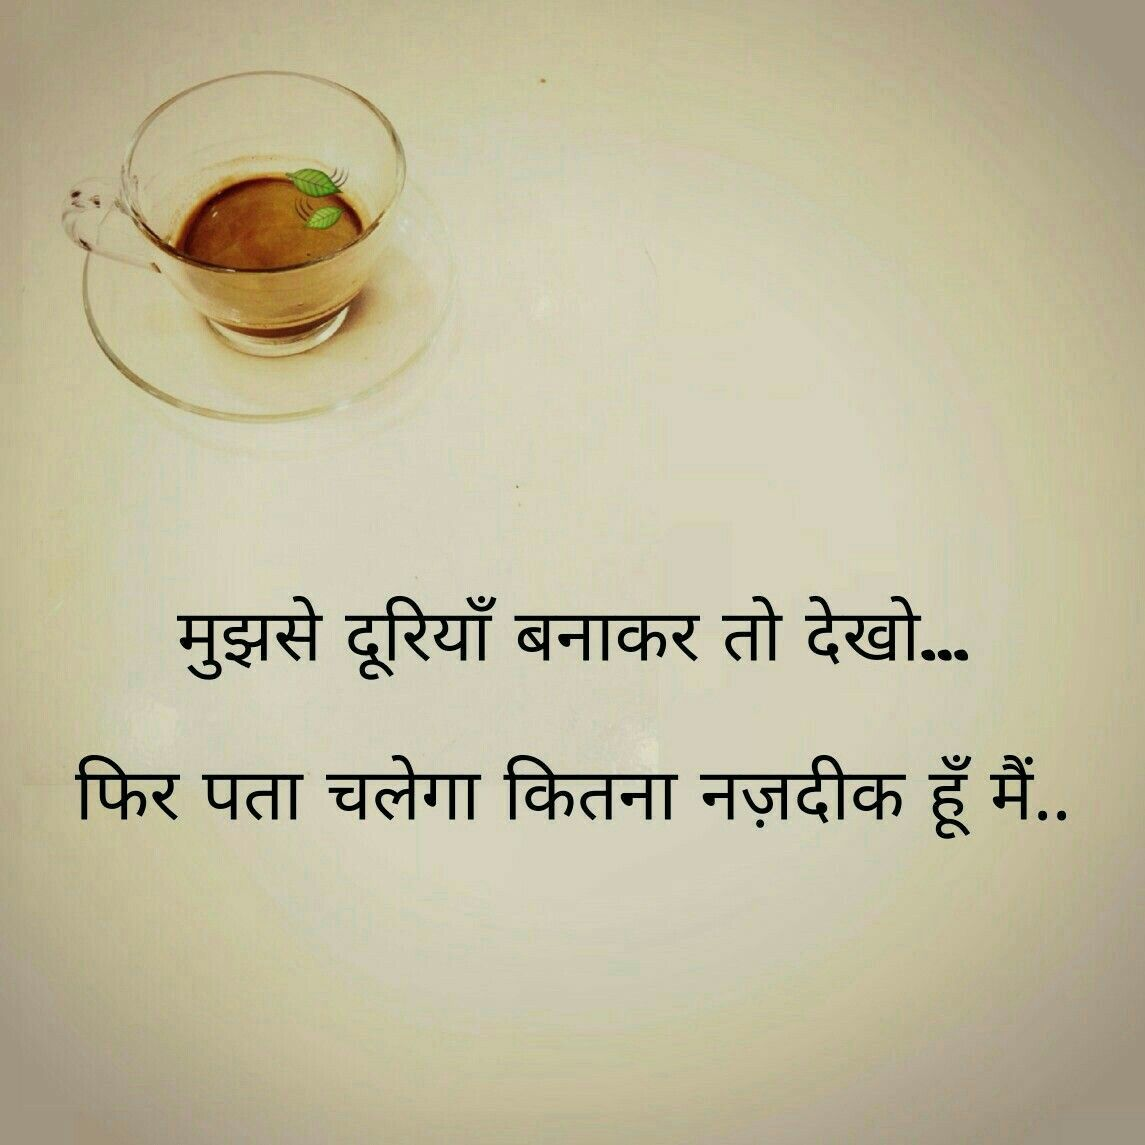 Quotes About Tea And Friendship Pinvaishnavi Arun On Shyari  Pinterest  Hindi Quotes And